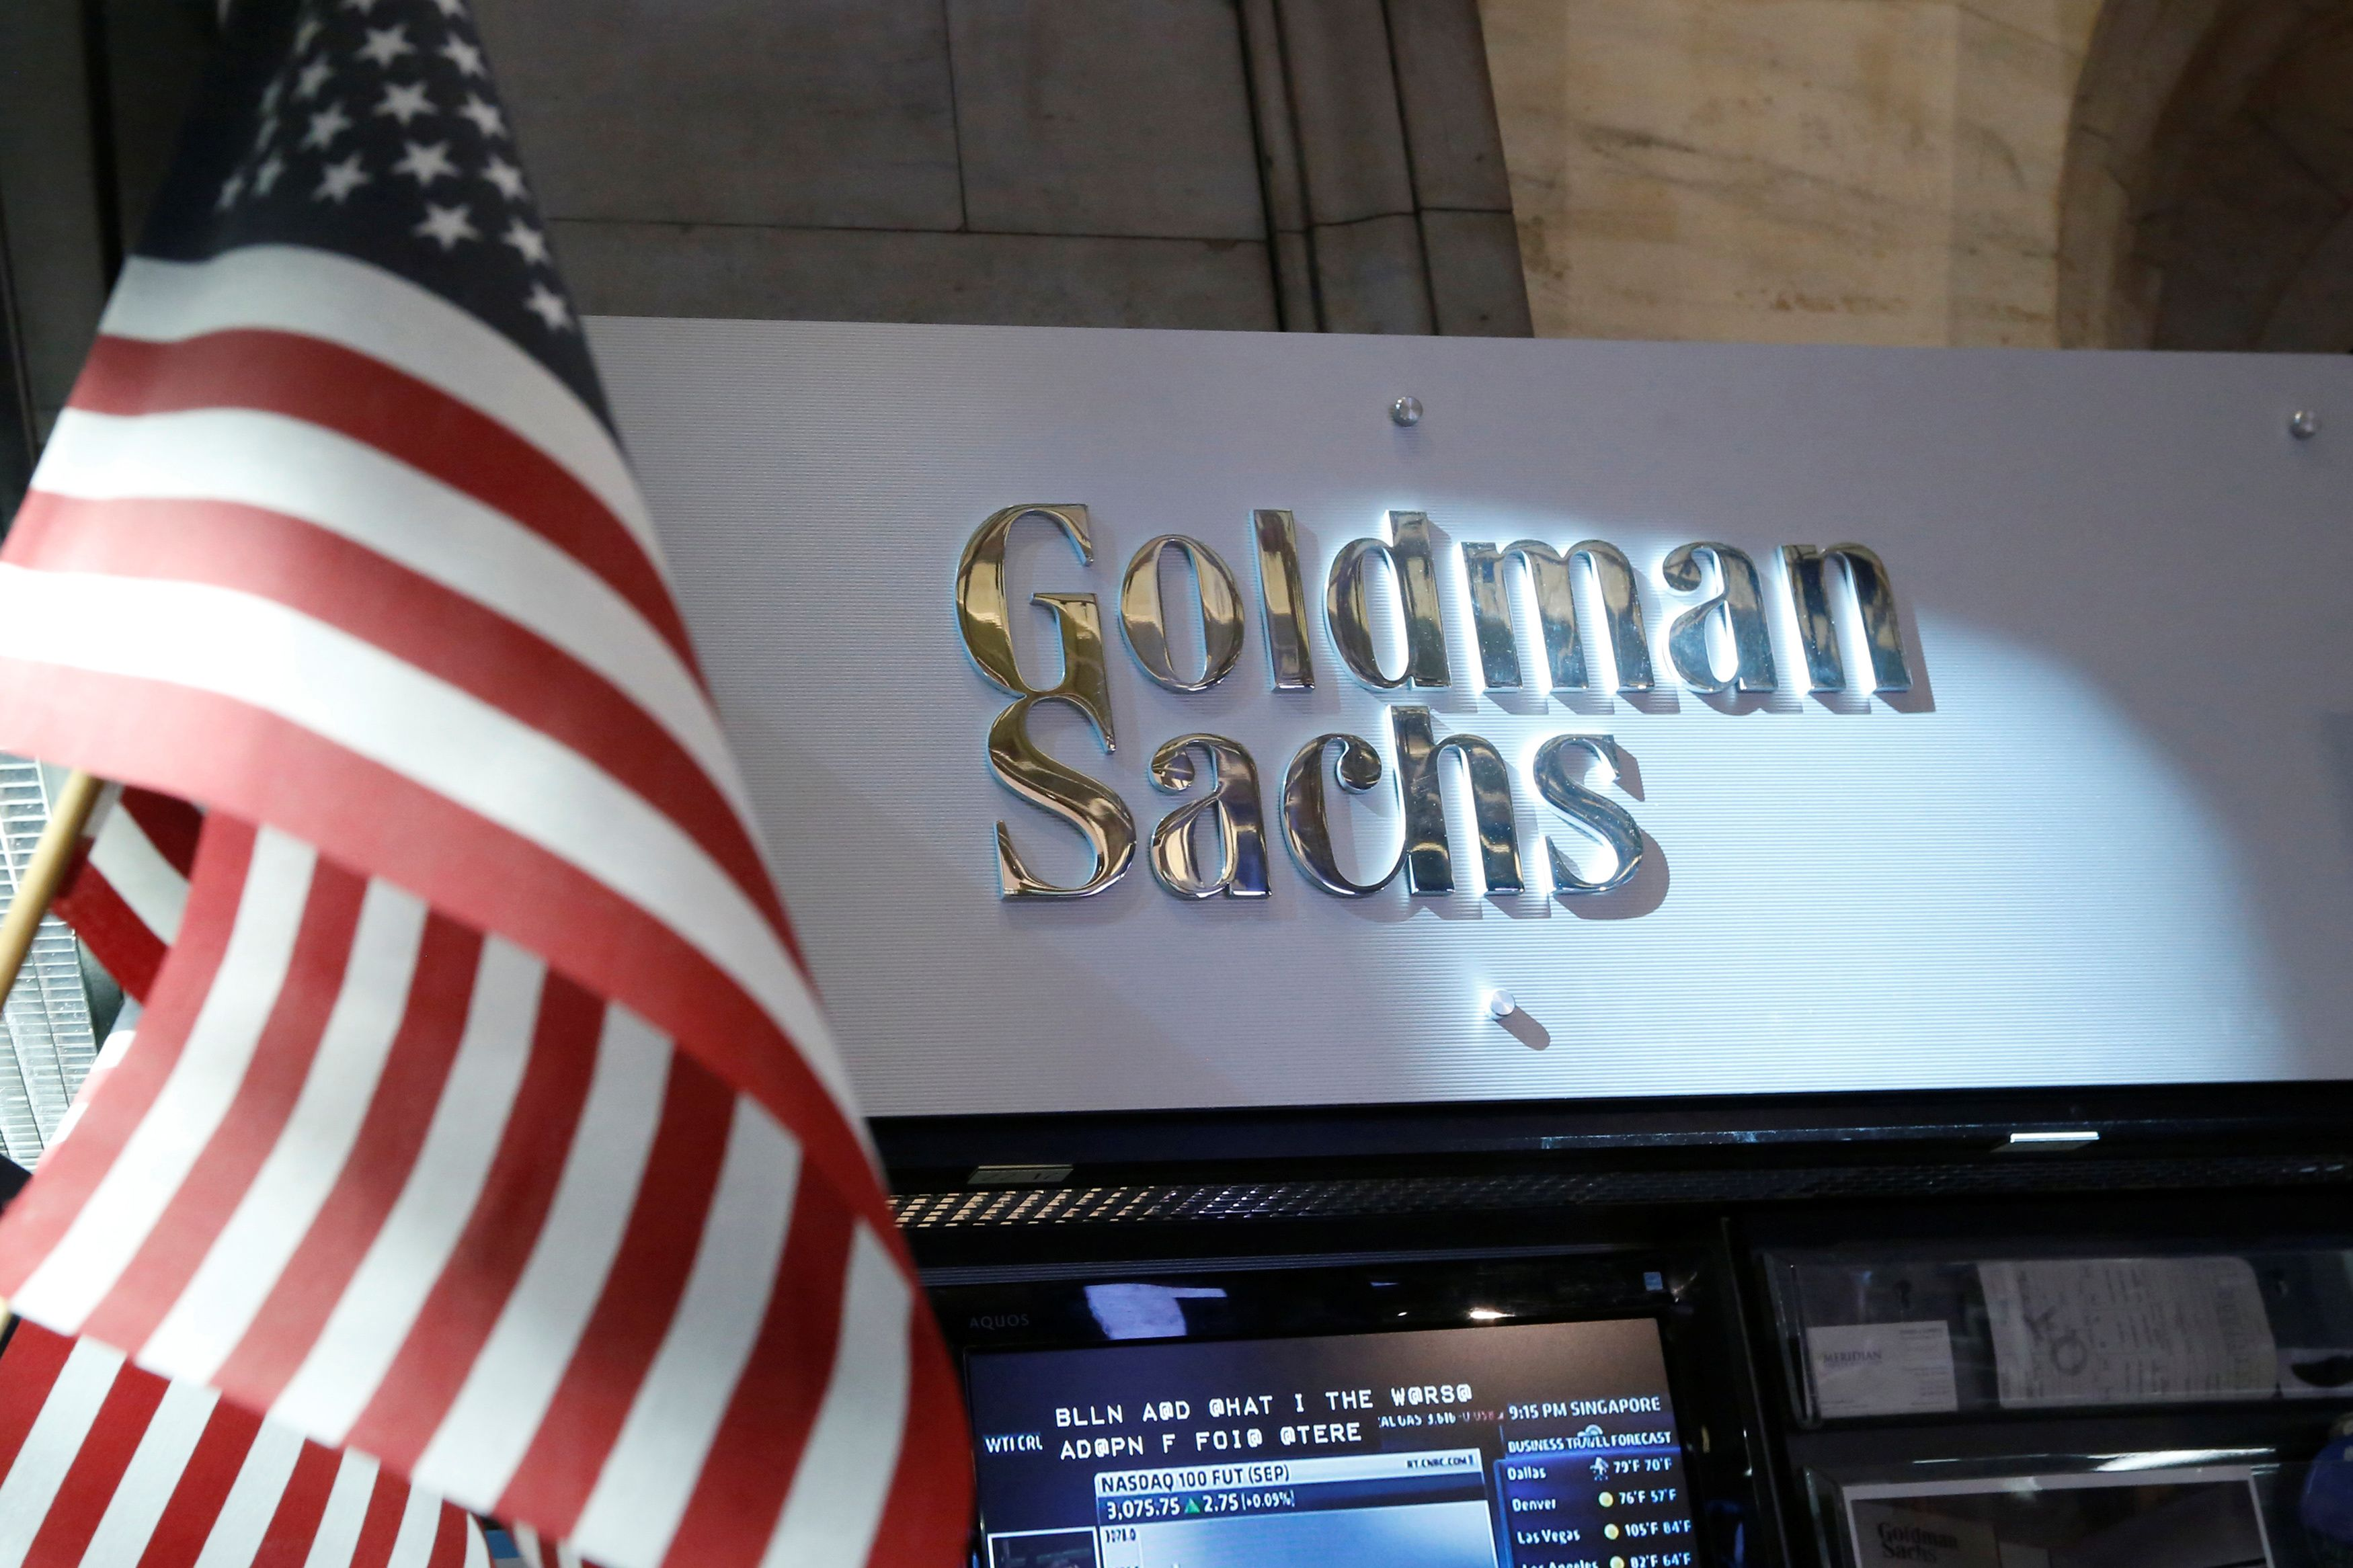 Goldman Sachs offers peanuts to compensate Malaysia for 1MDB: Mahathir